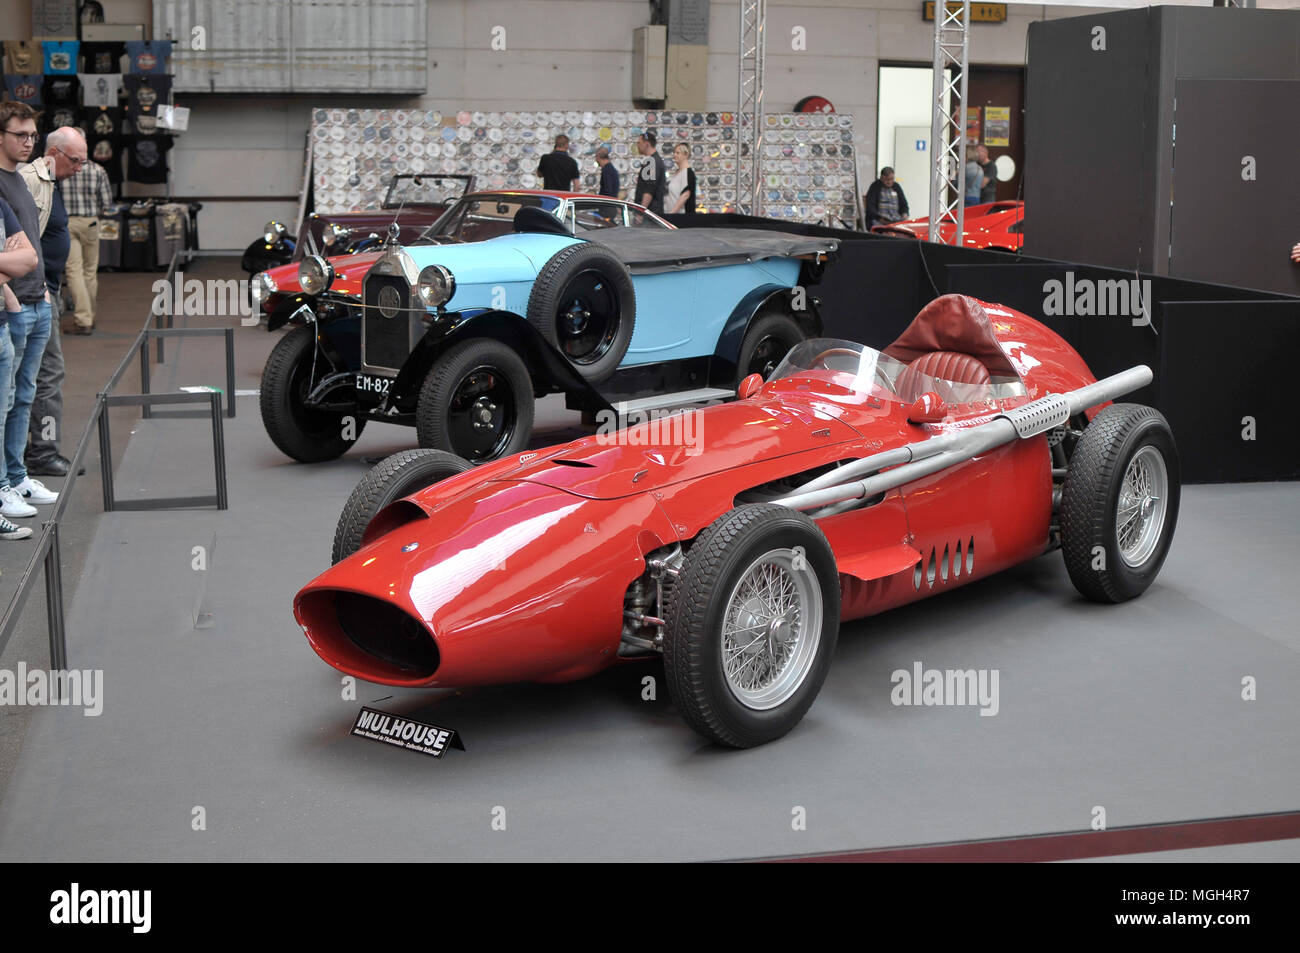 Maserati 250 F collection car - Stock Image